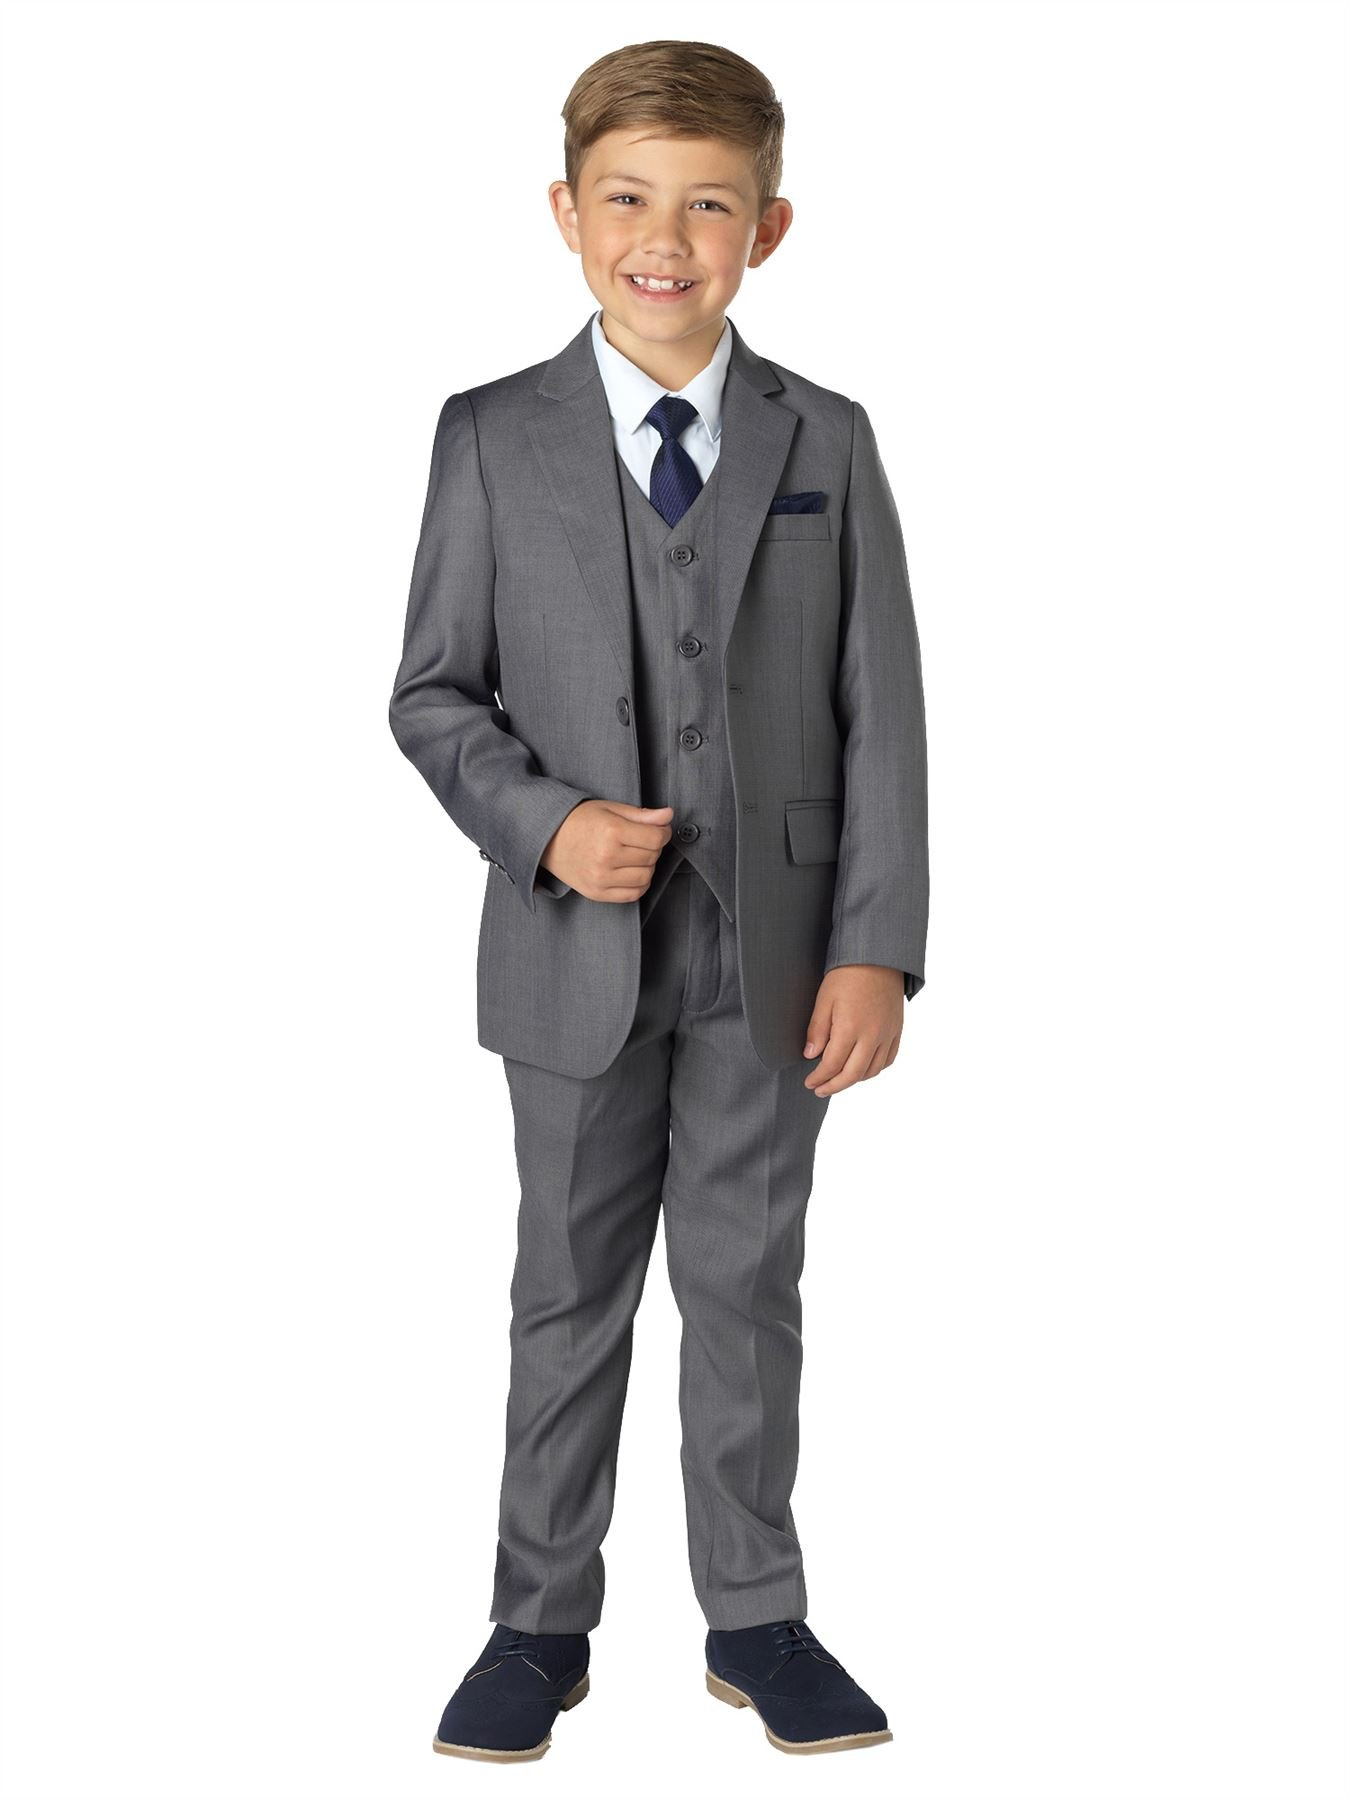 Paisley of London, Sampson Gray Slim Fit Suit, Boys Occasion Wear, Kids Wedding Suit, 16